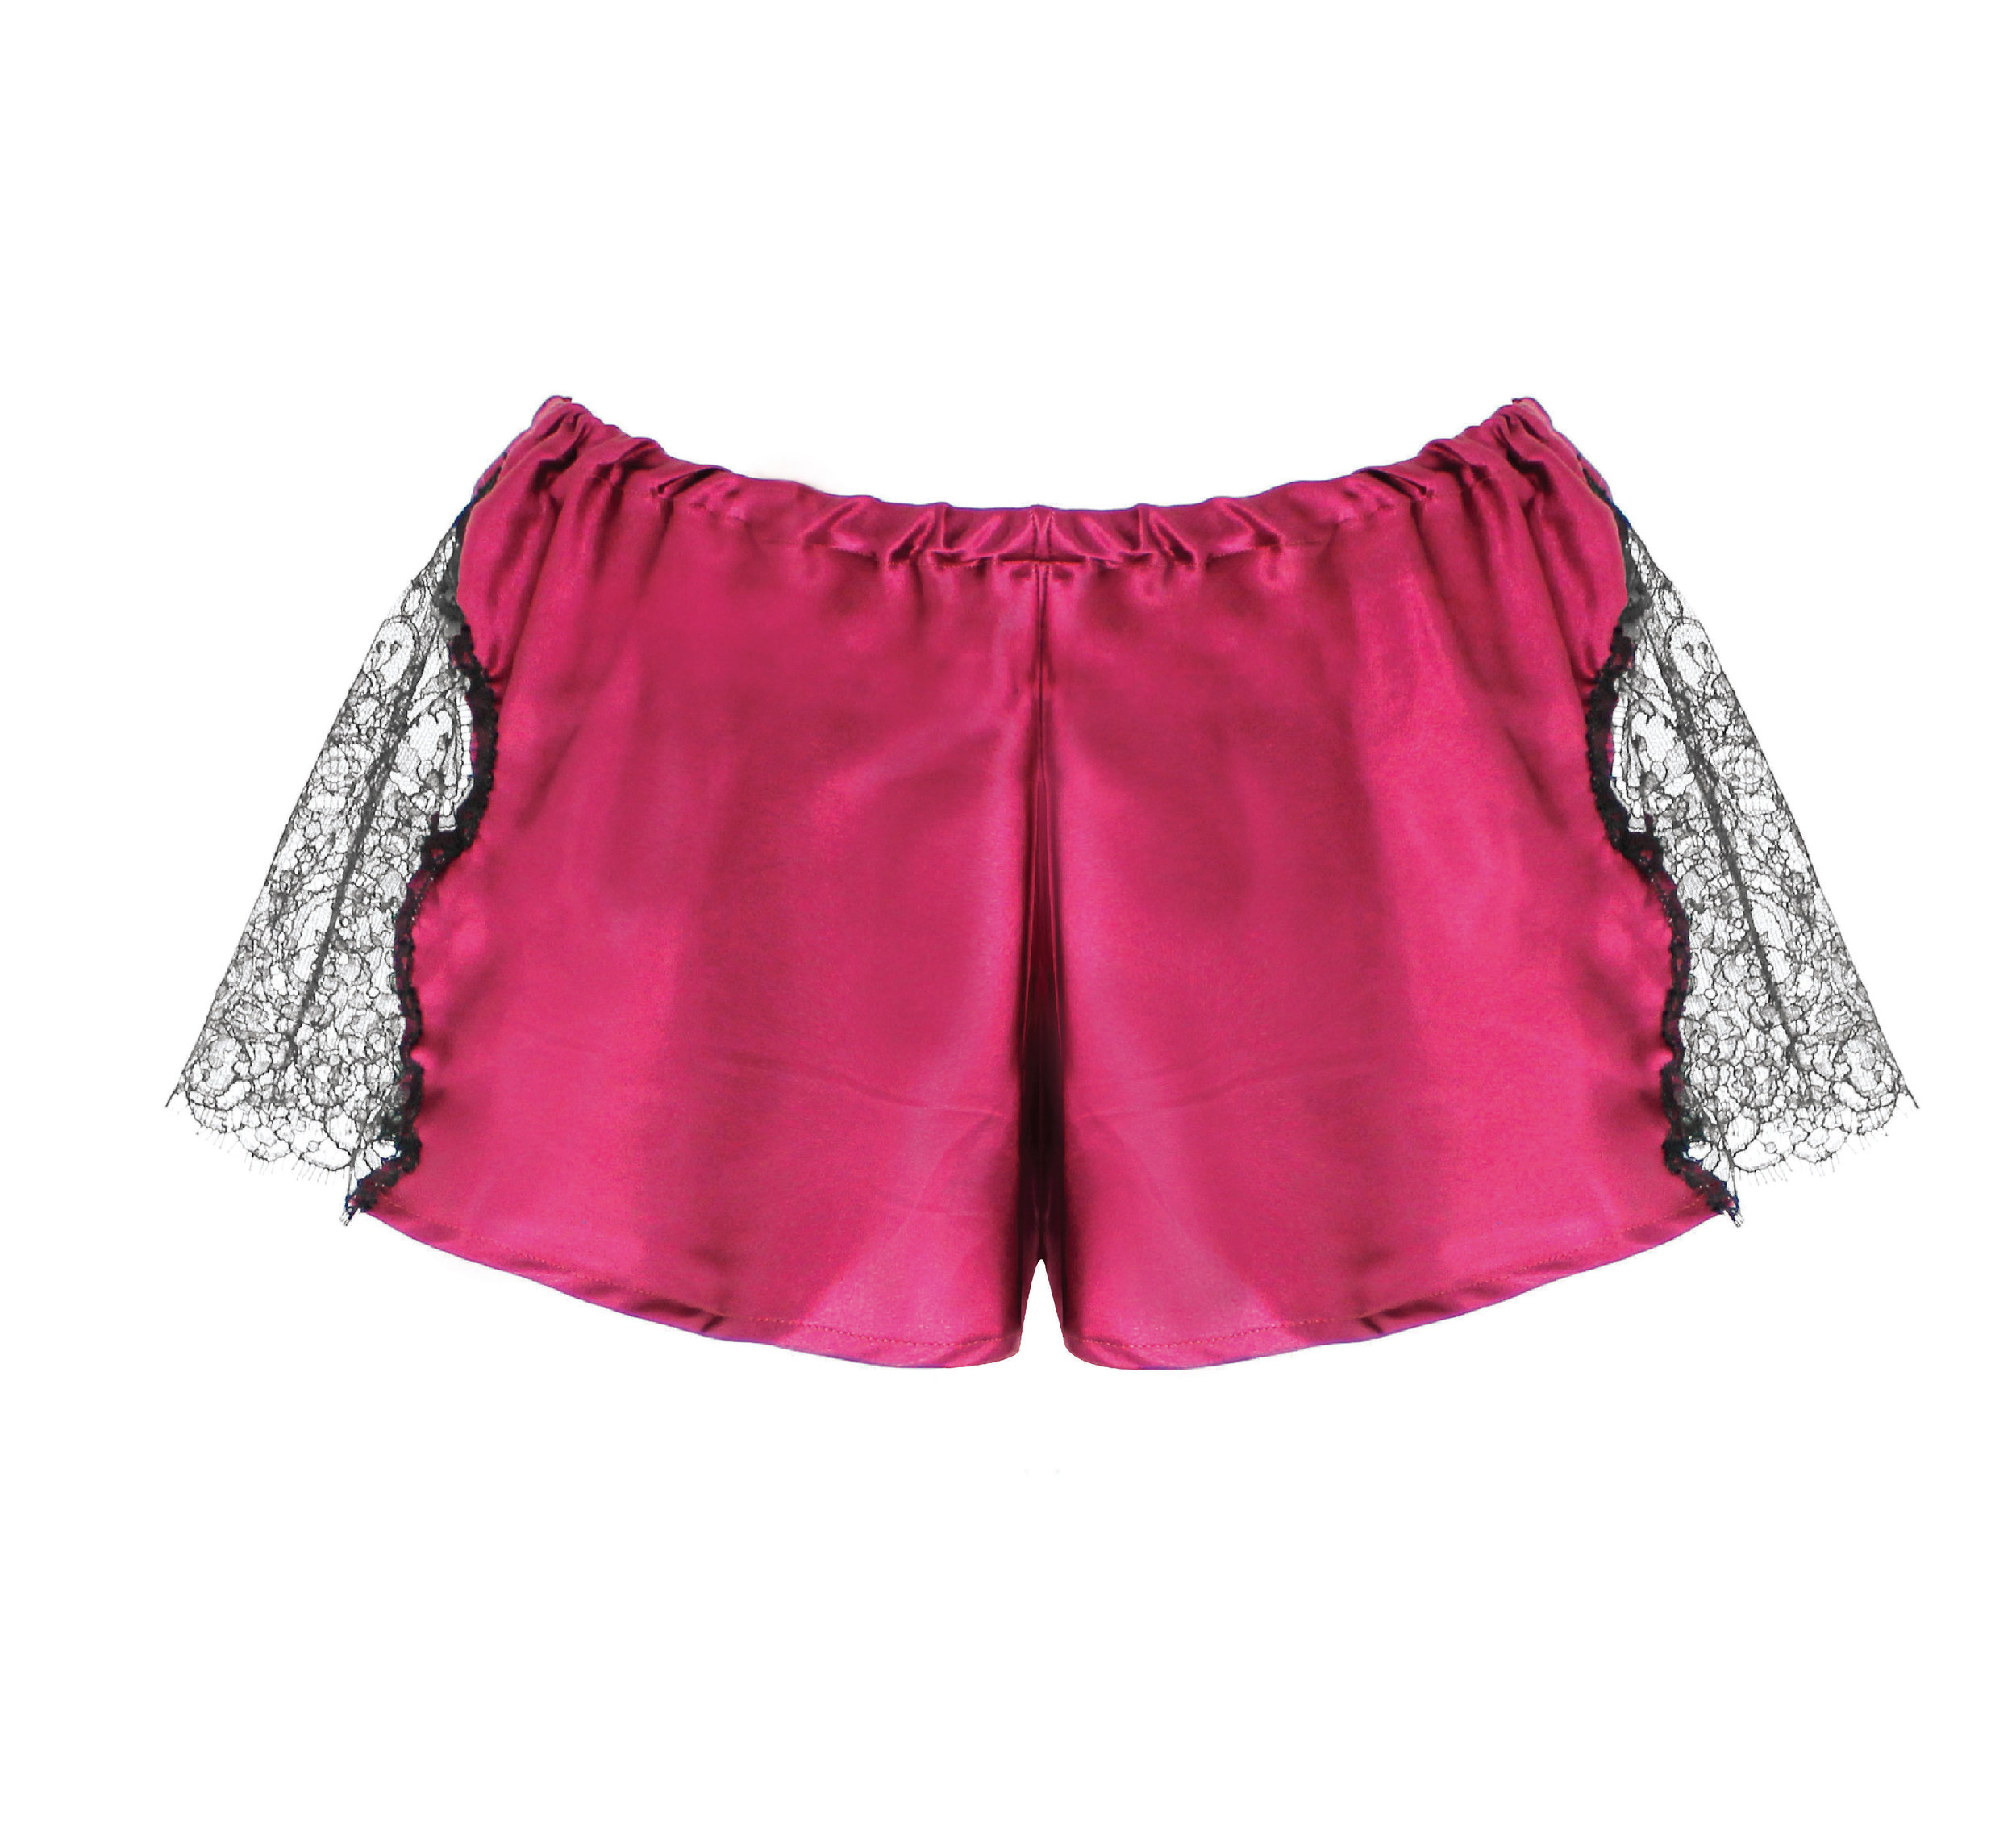 LUXURIOUS SILK WITH FRENCH DESIGNED LACE FRENCH KNICKERS SIZE 8